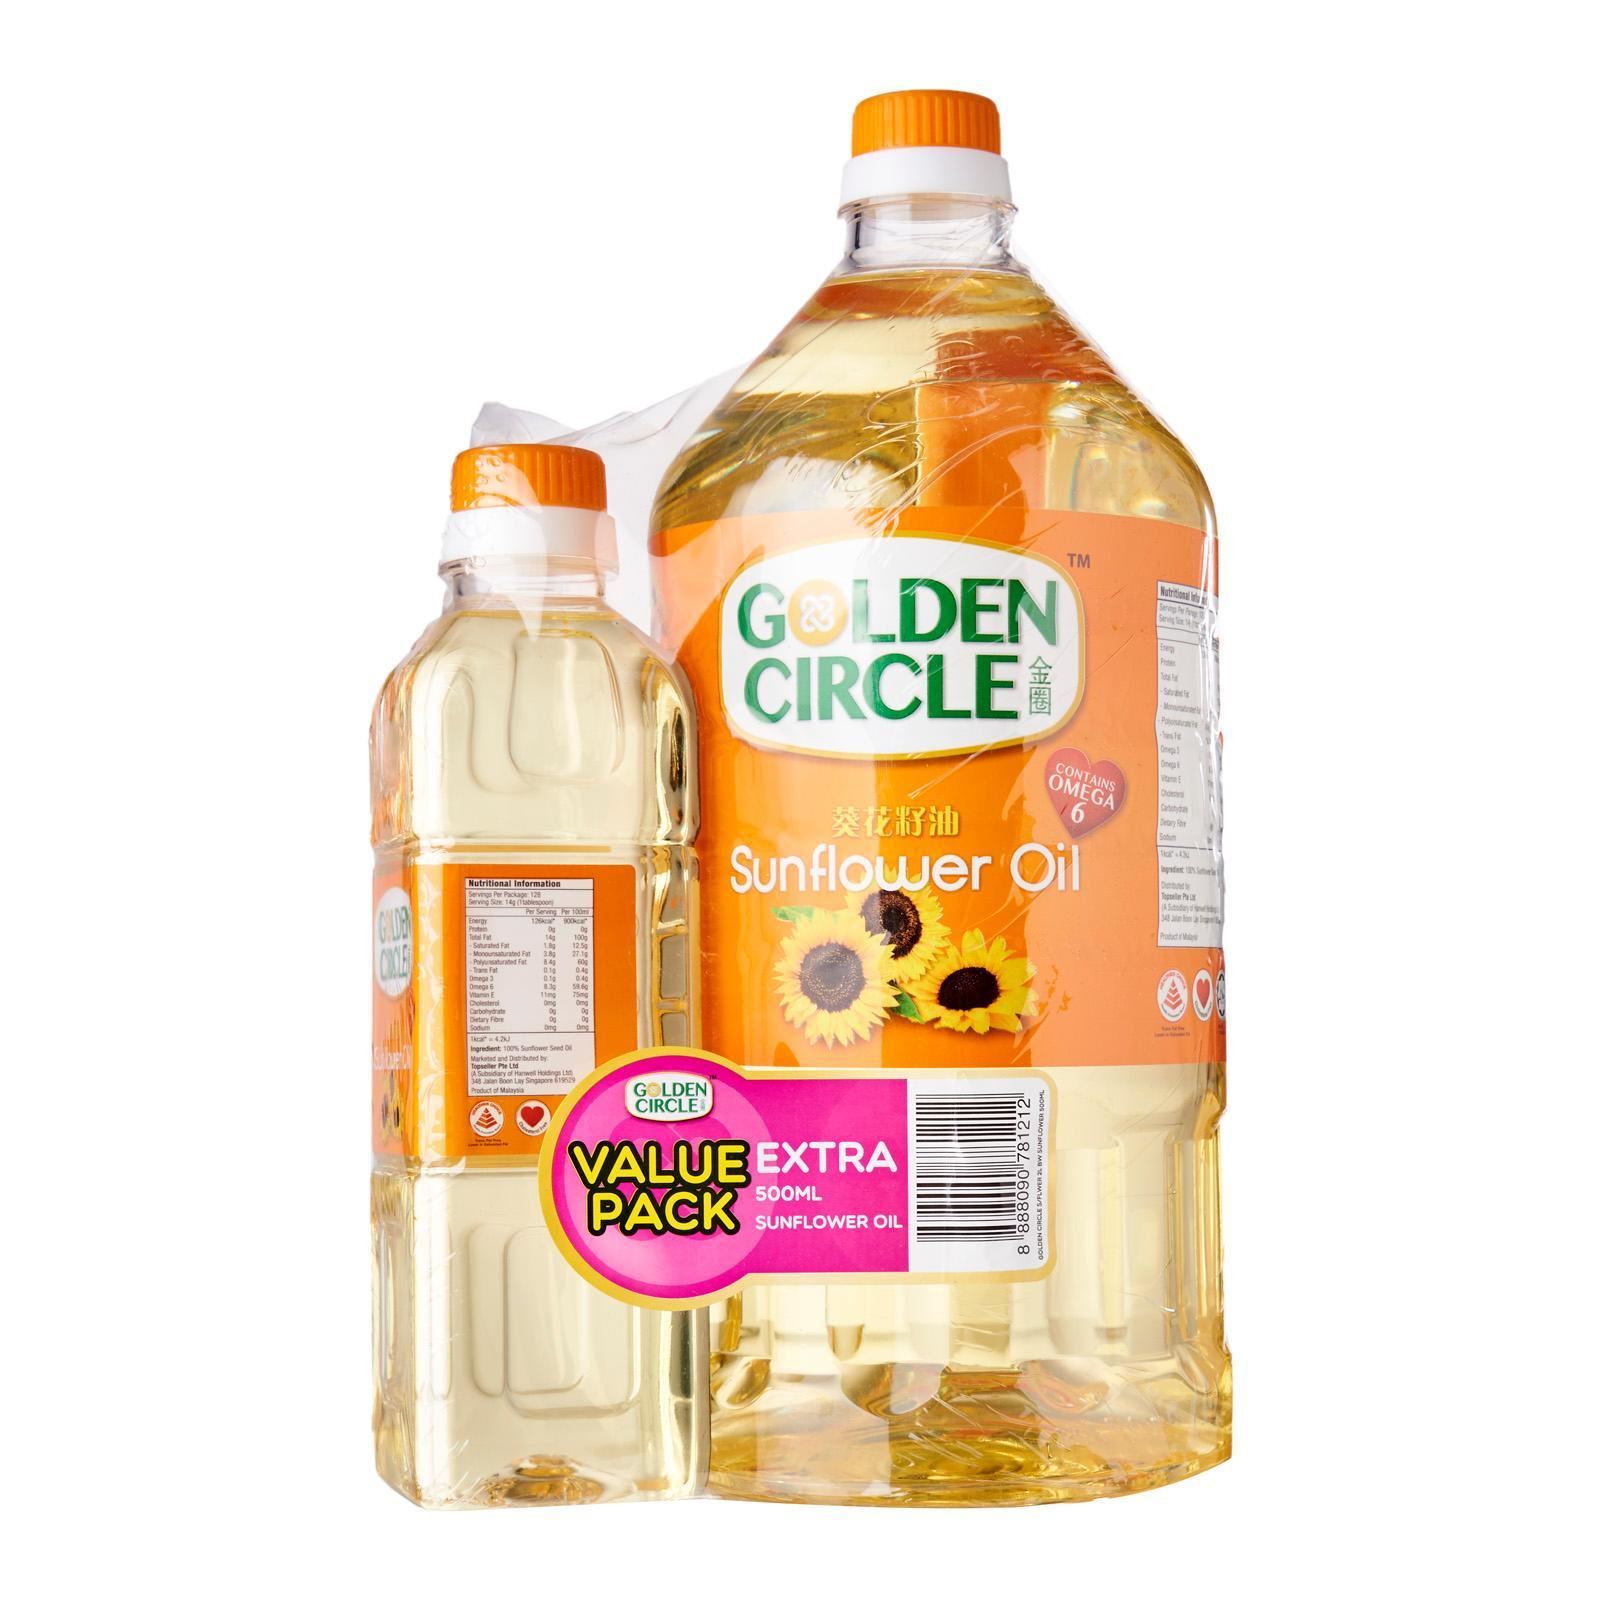 Golden Circle Sunflower Oil Banded With Sunflower 500ml